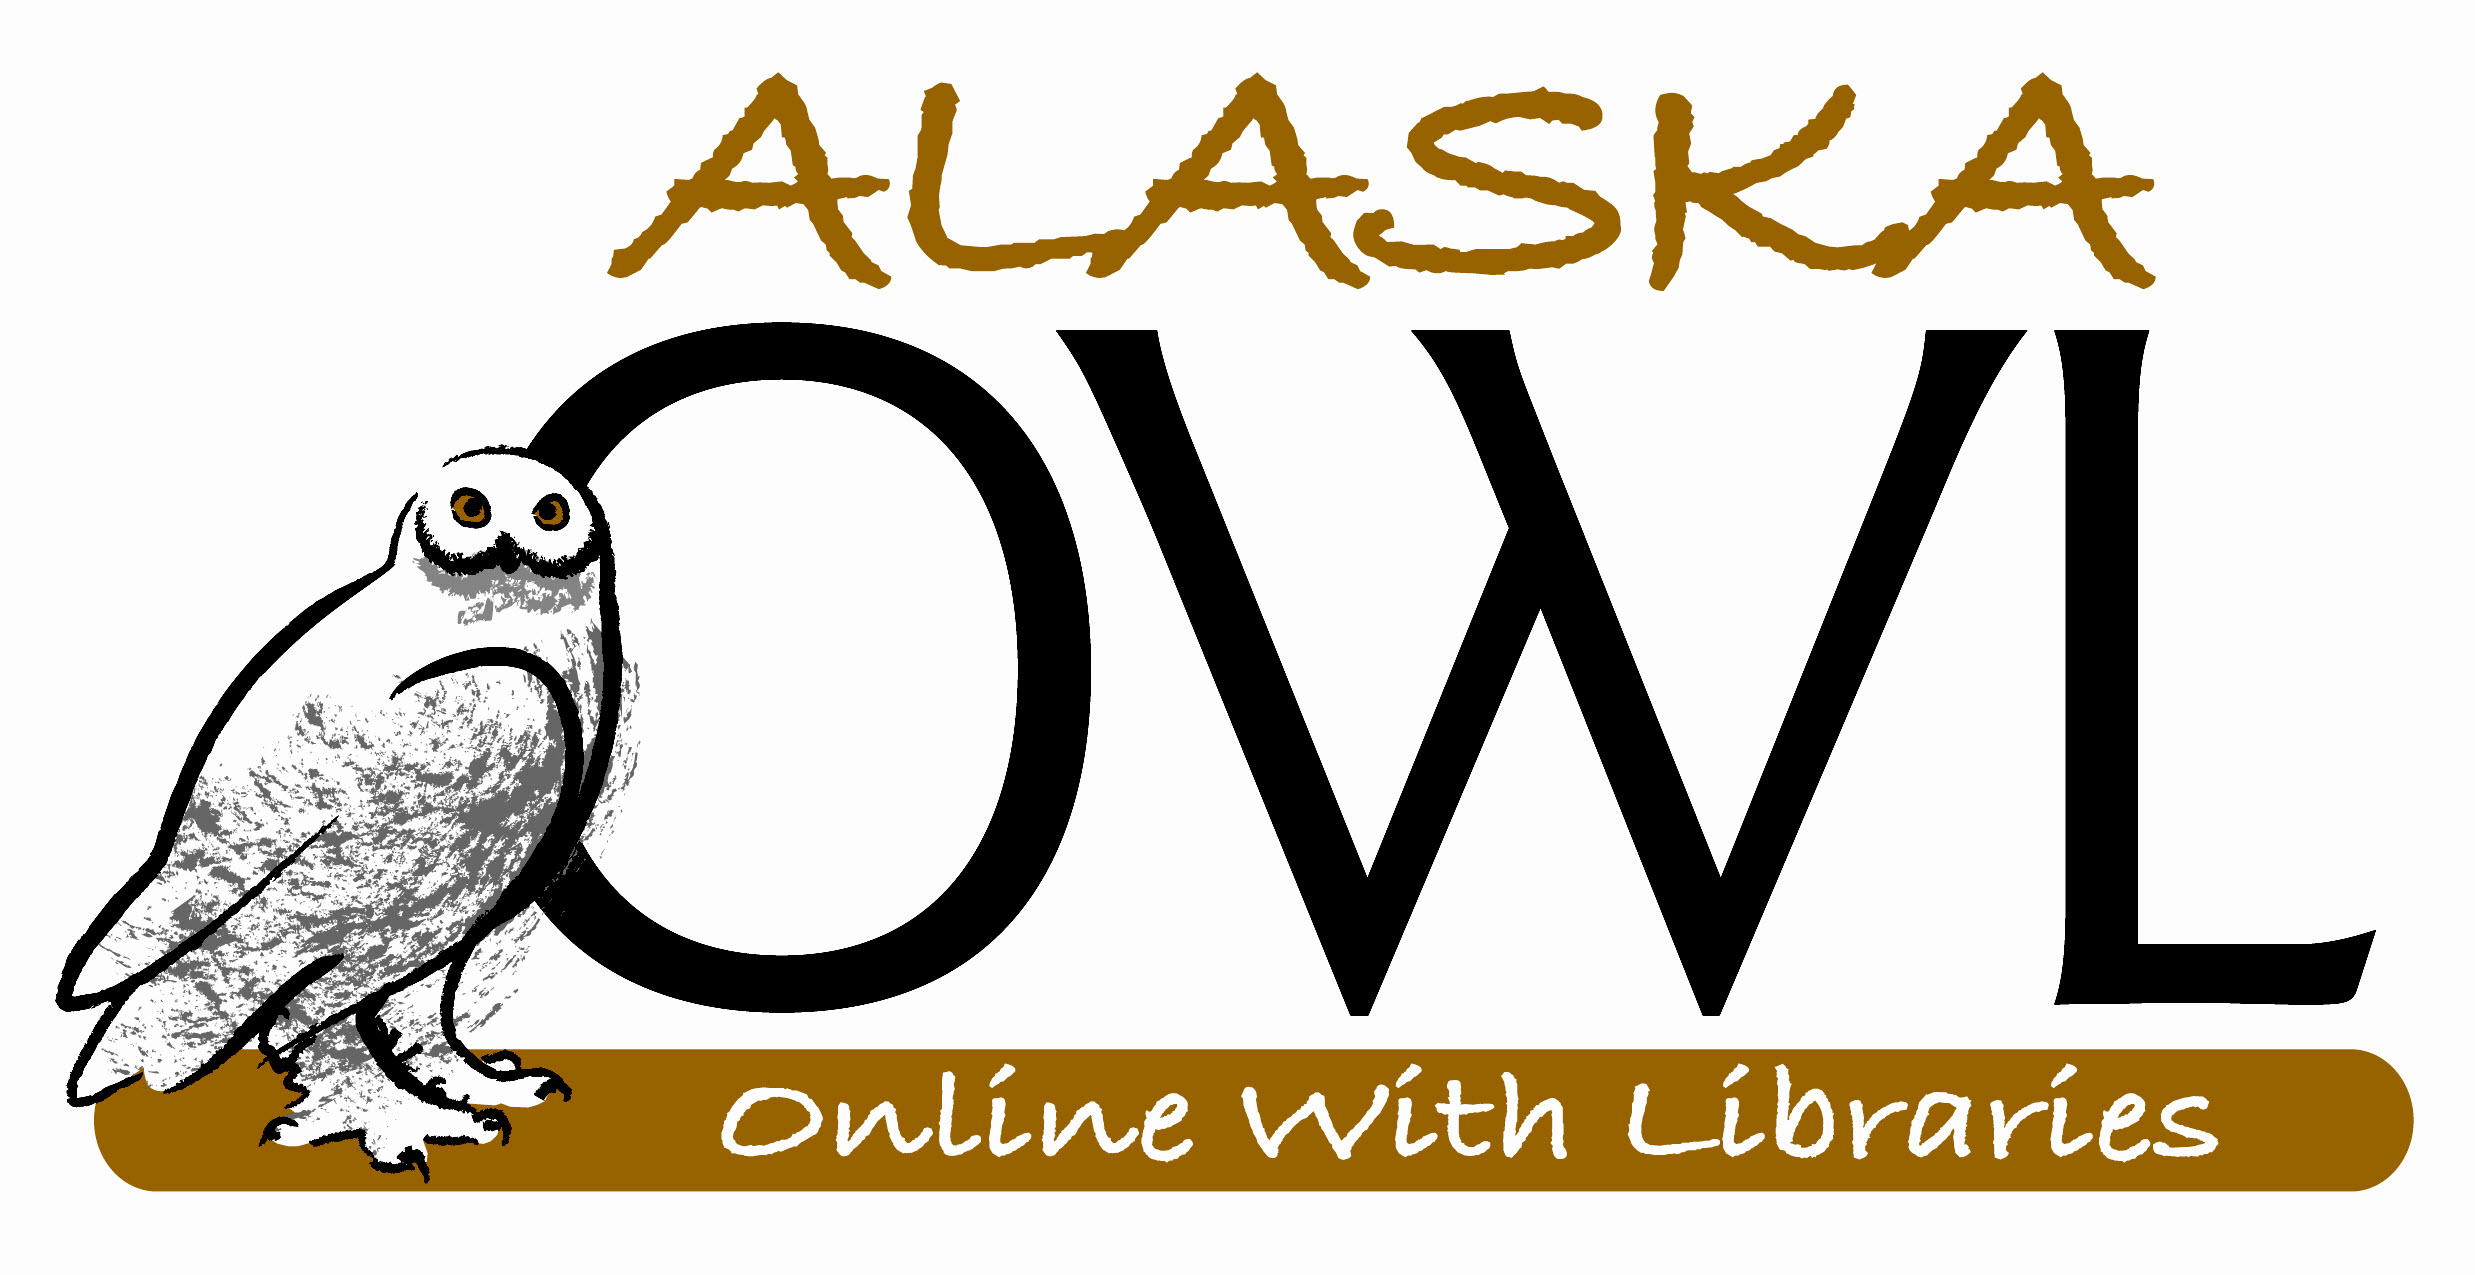 Online With Libraries (OWL) logo